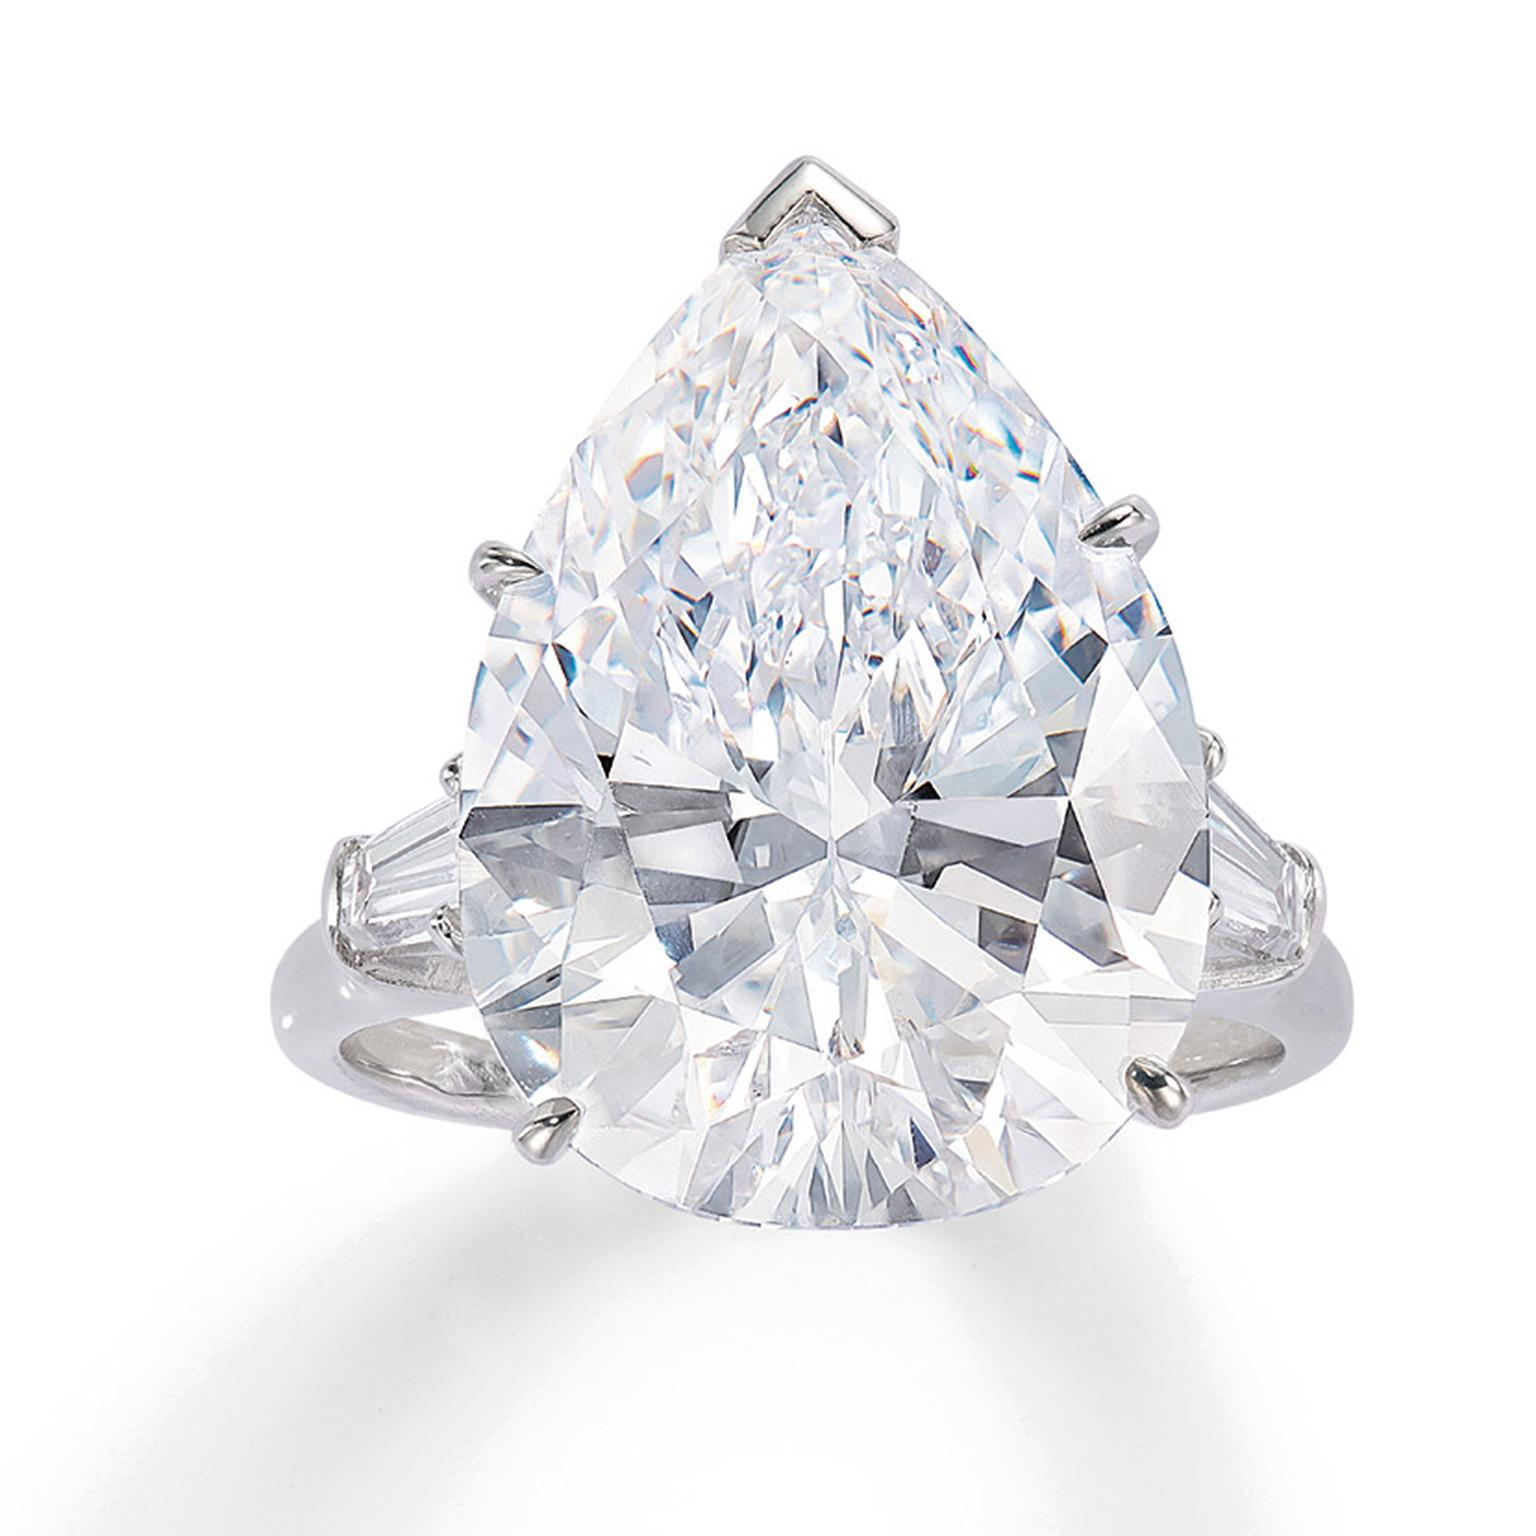 Lot 579 diamond ring for Phillips auction